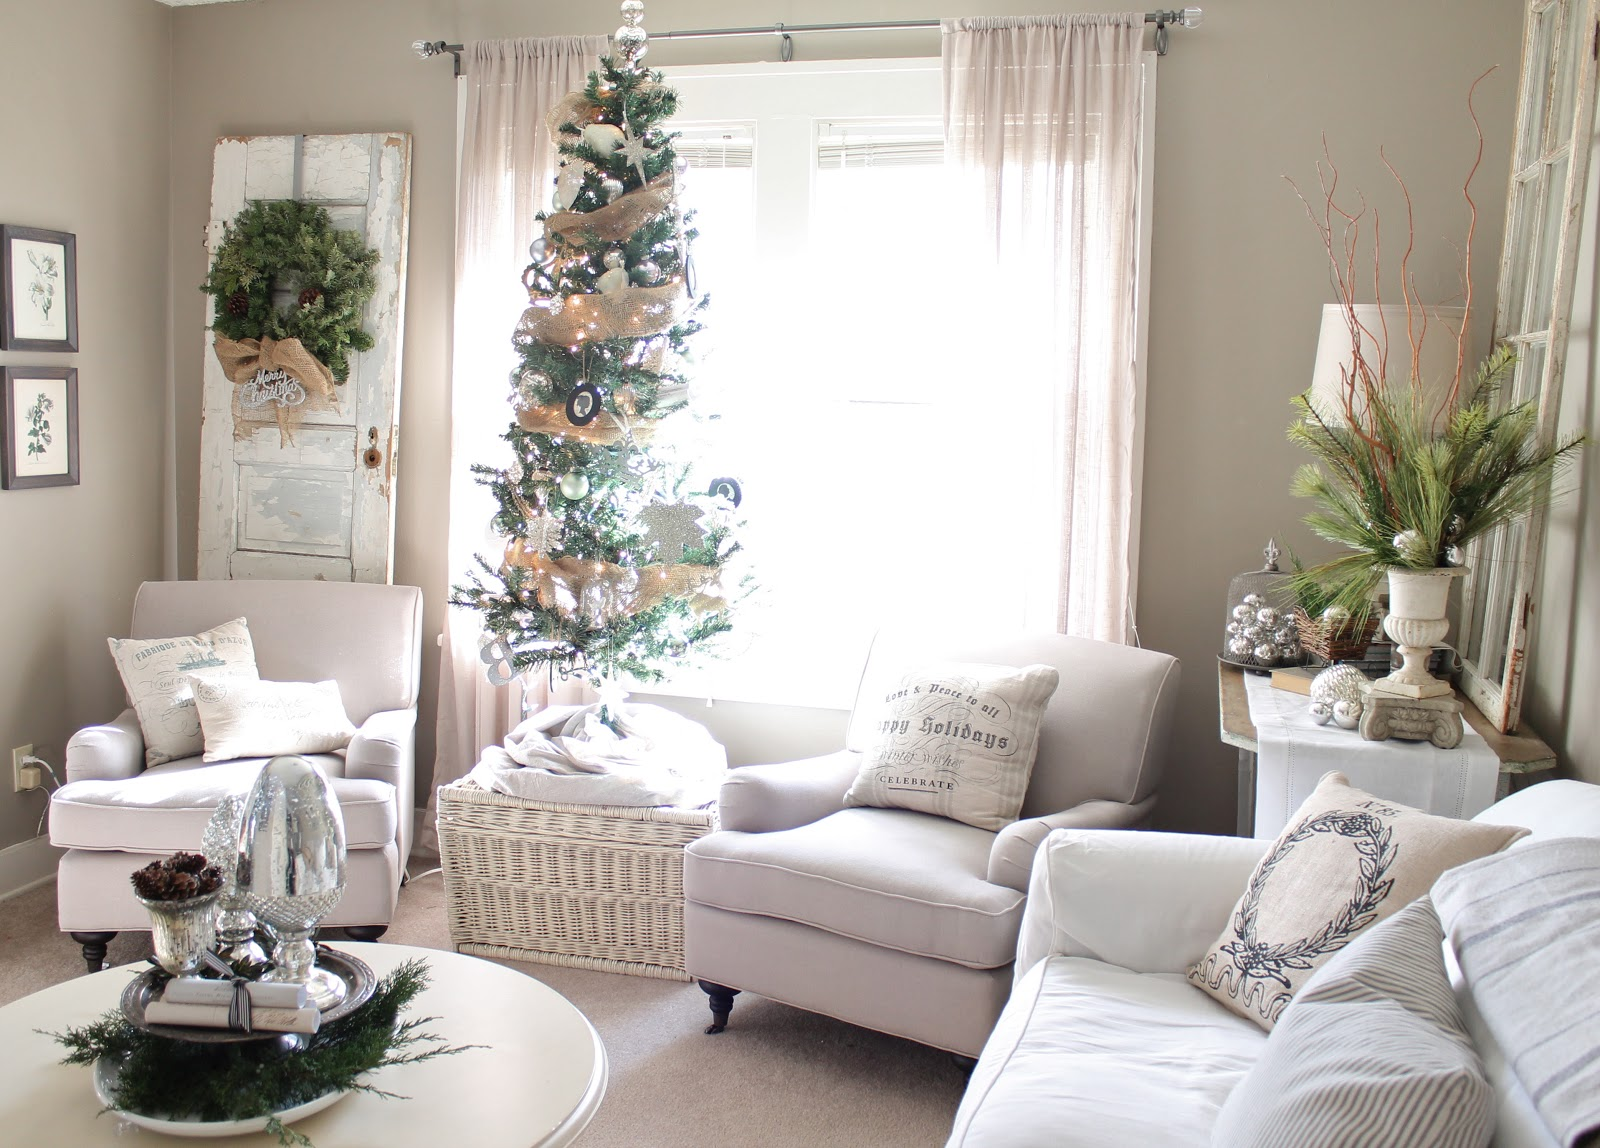 Christmas living room decorations - Cool White Christmas Living Room Idea Source